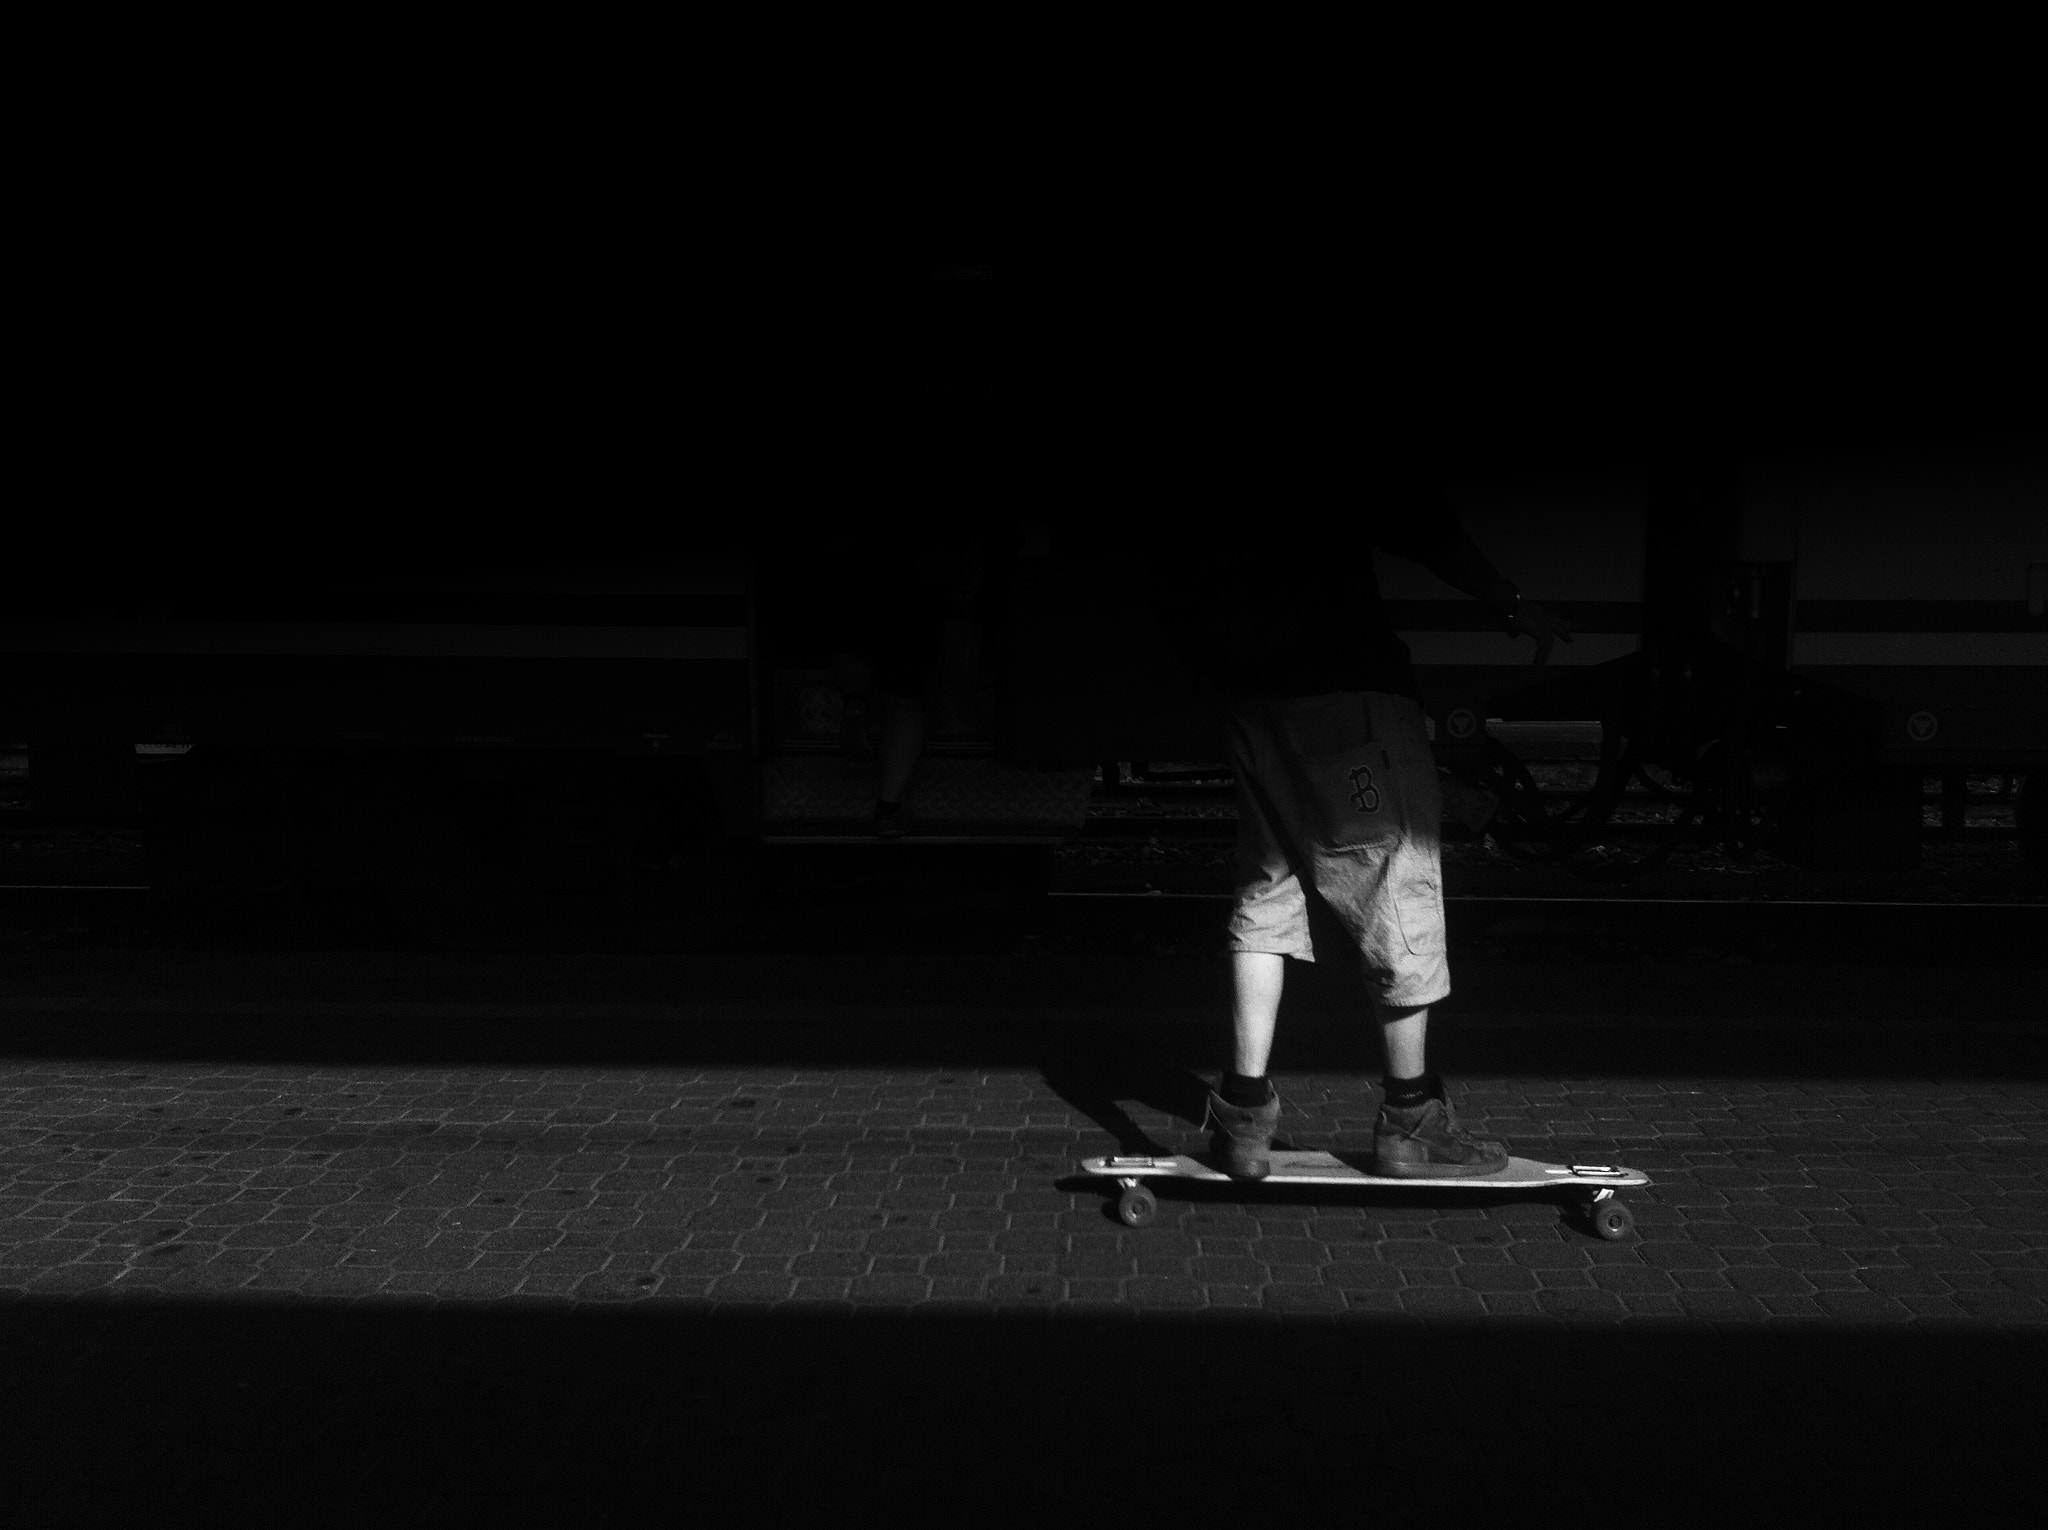 Photograph Longboard ride by Alessandro Greganti on 500px